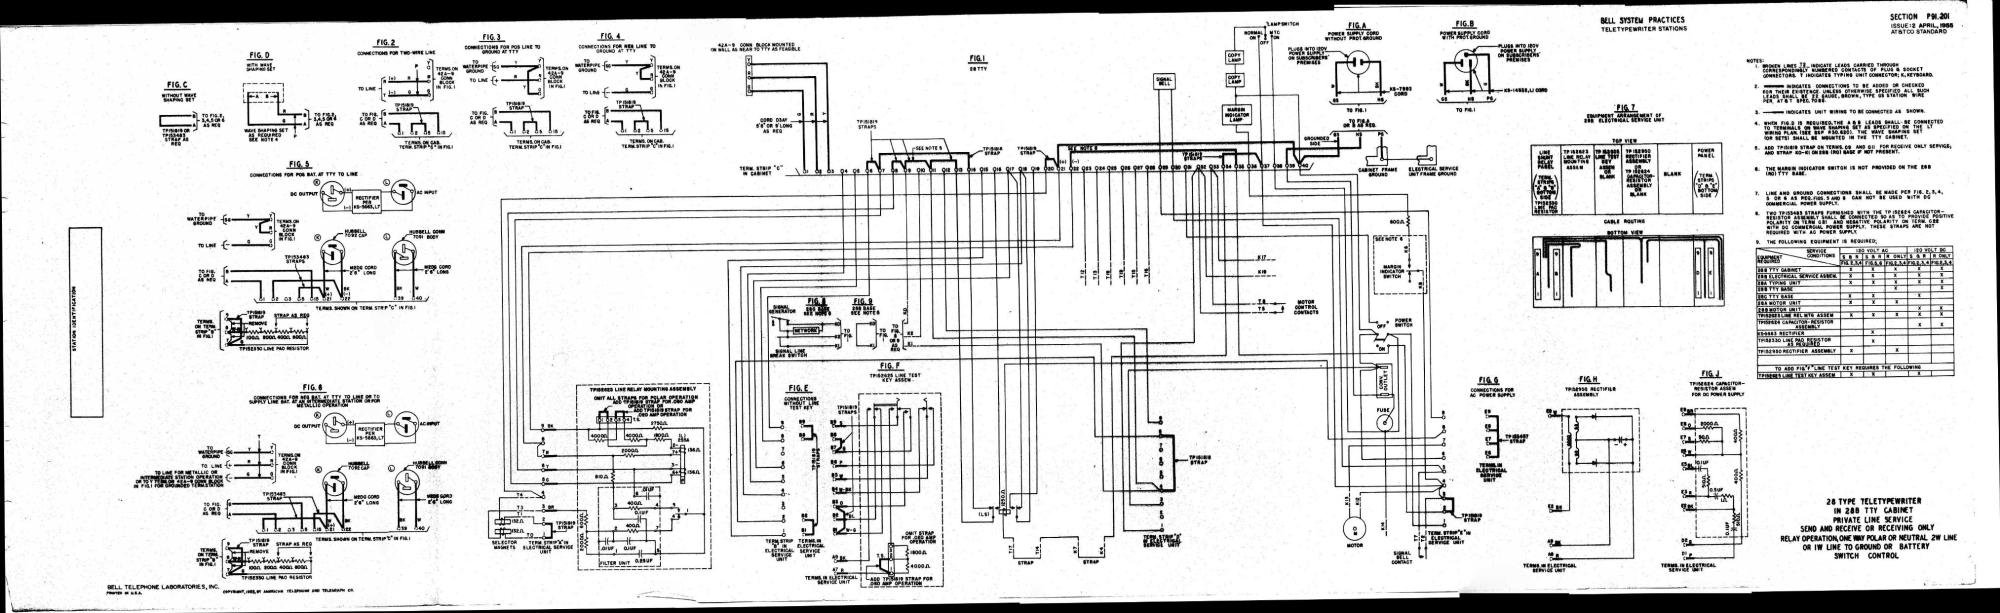 hight resolution of fjr wiring diagram frc wiring diagram wiring diagram 2015 frc control system layout frc 2014 manual